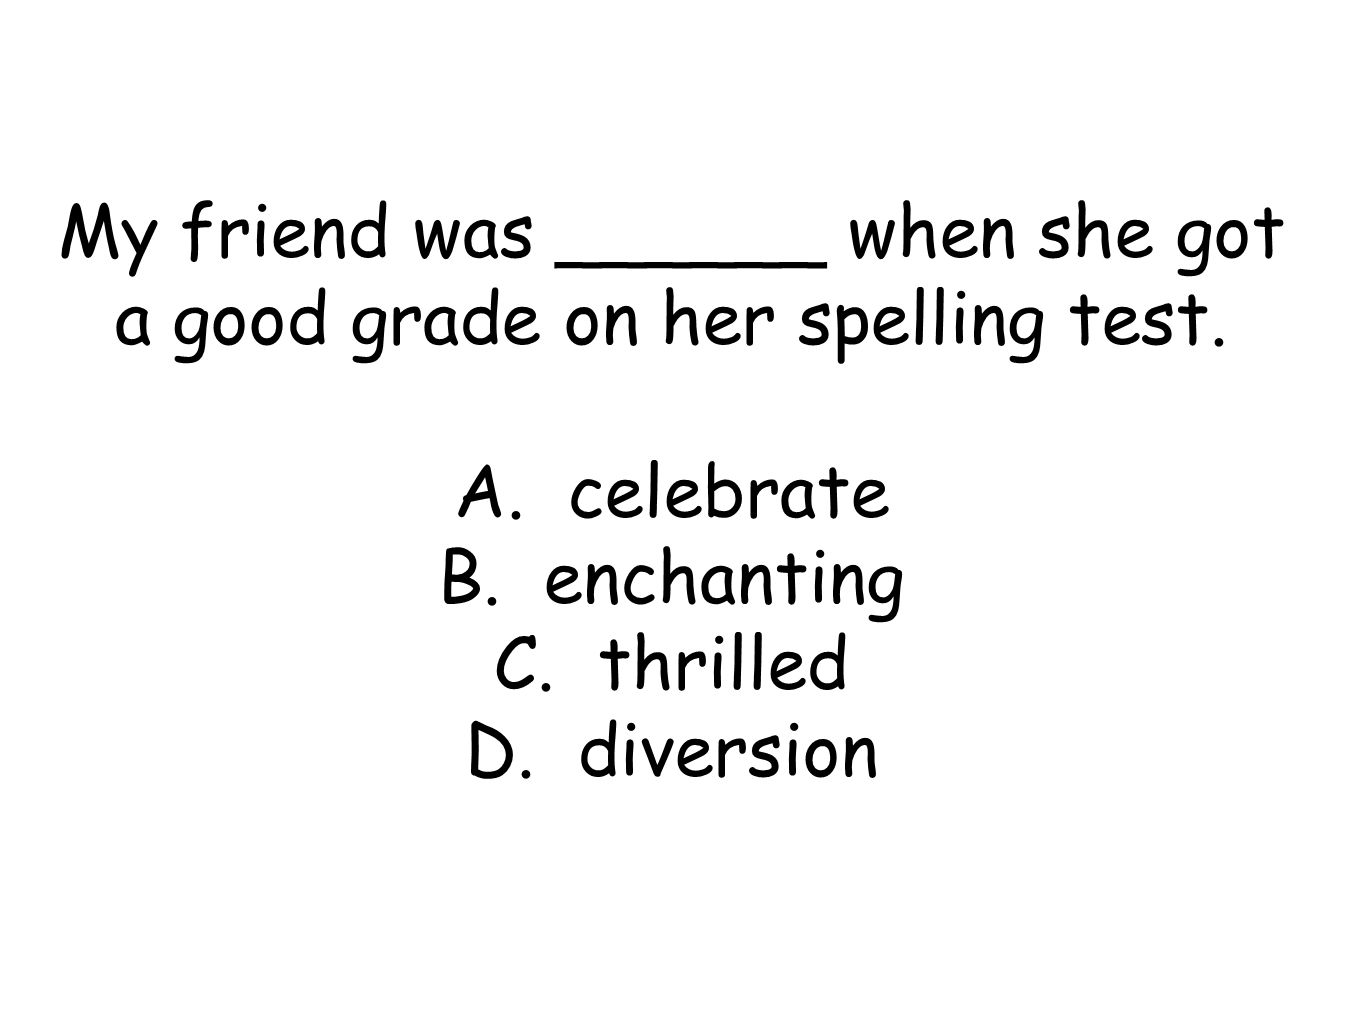 My friend was ______ when she got a good grade on her spelling test.